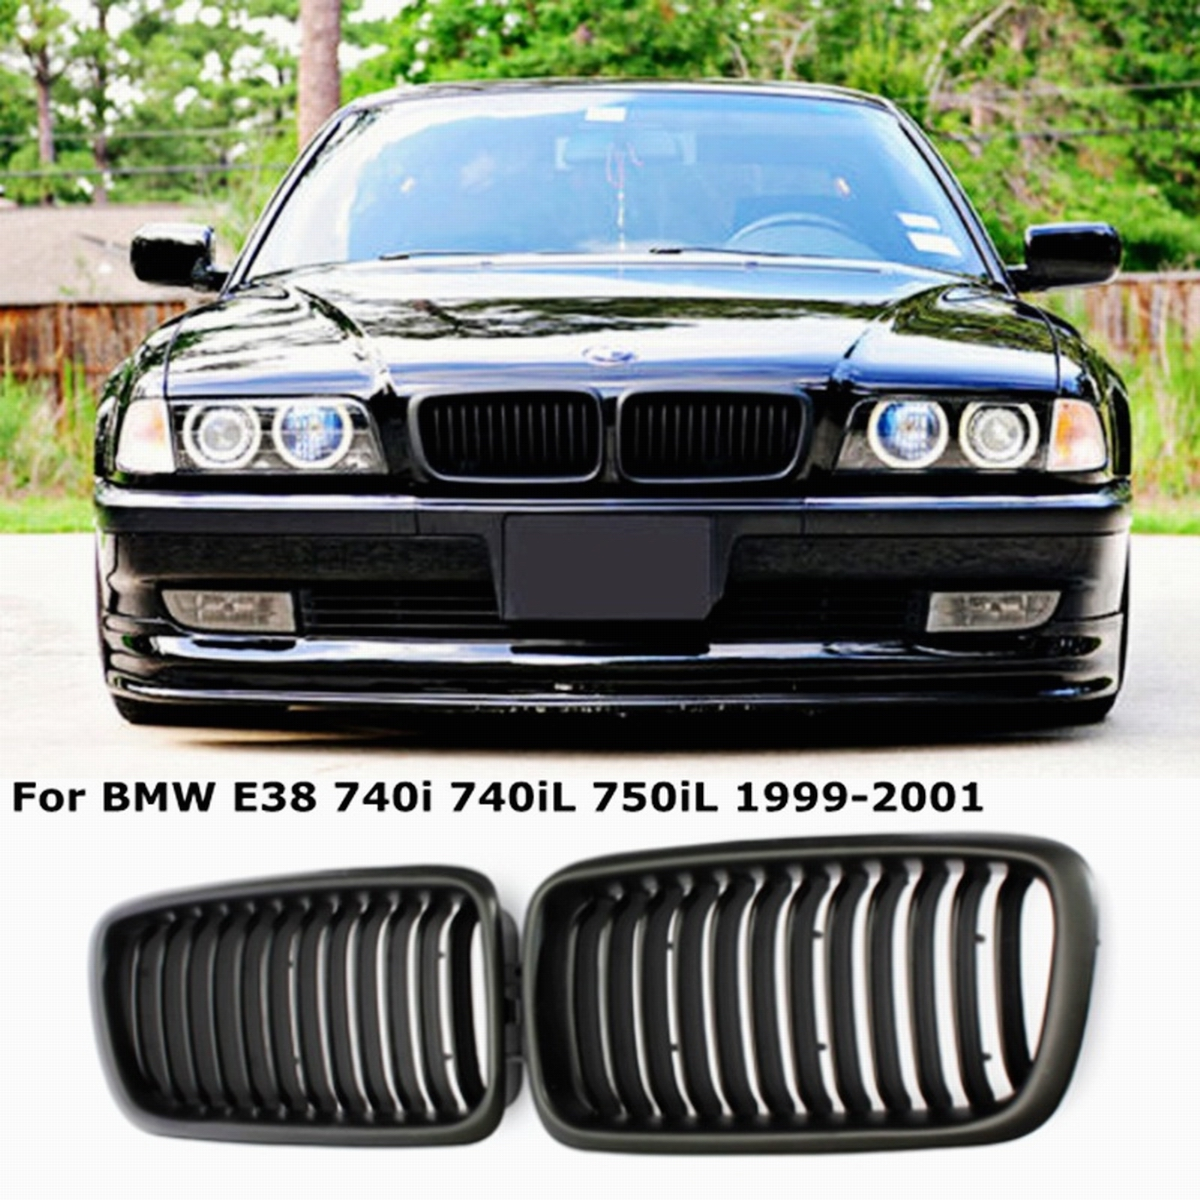 Pair Gloss Black/Matte Black/Chrome Car Front Kidney Grilles Grille For BMW E38 1999-2001 Racing GrillsPair Gloss Black/Matte Black/Chrome Car Front Kidney Grilles Grille For BMW E38 1999-2001 Racing Grills